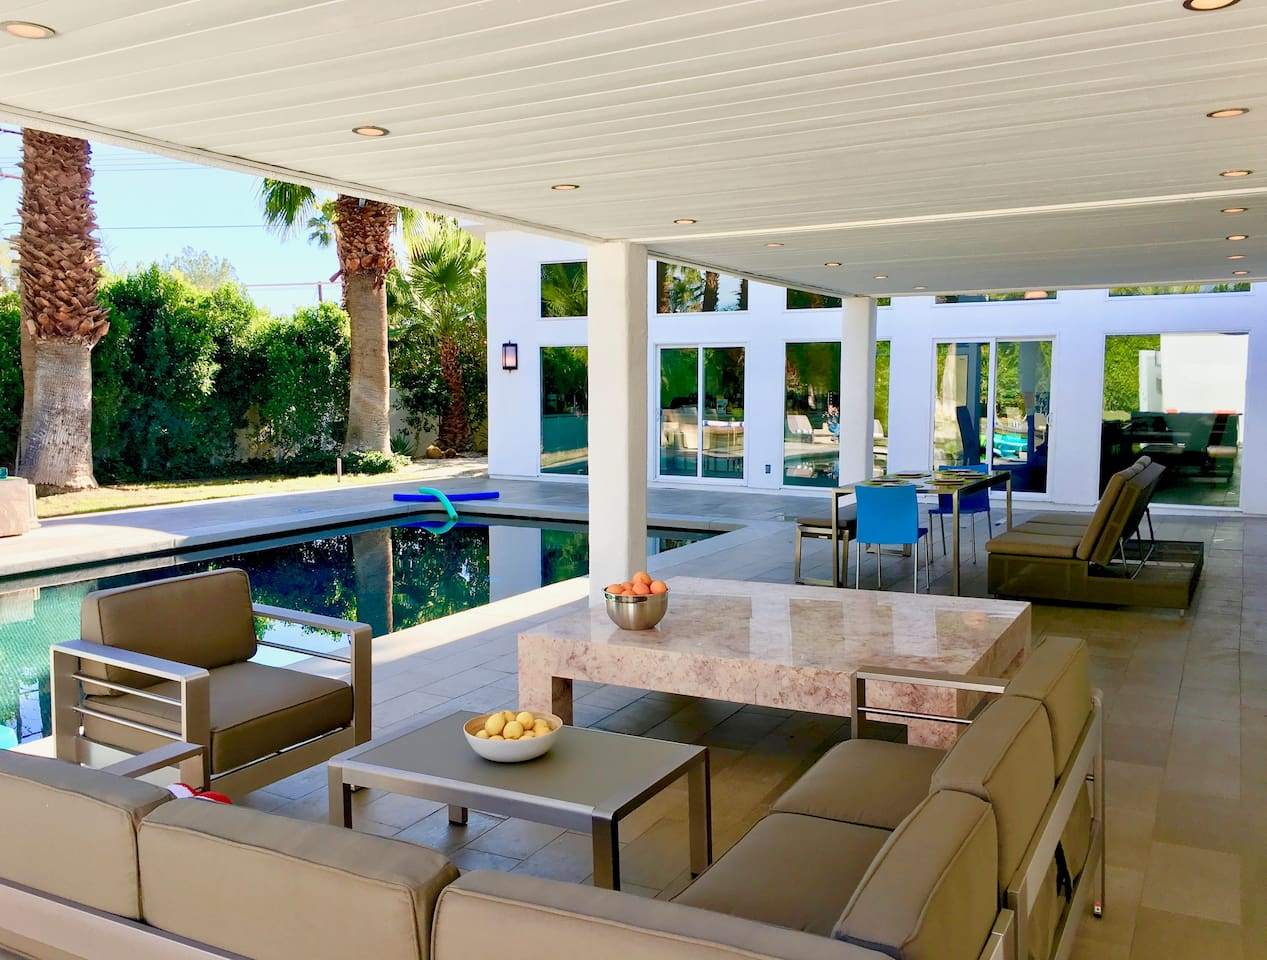 Relax with comfort and style in this indoor-outdoor paradise